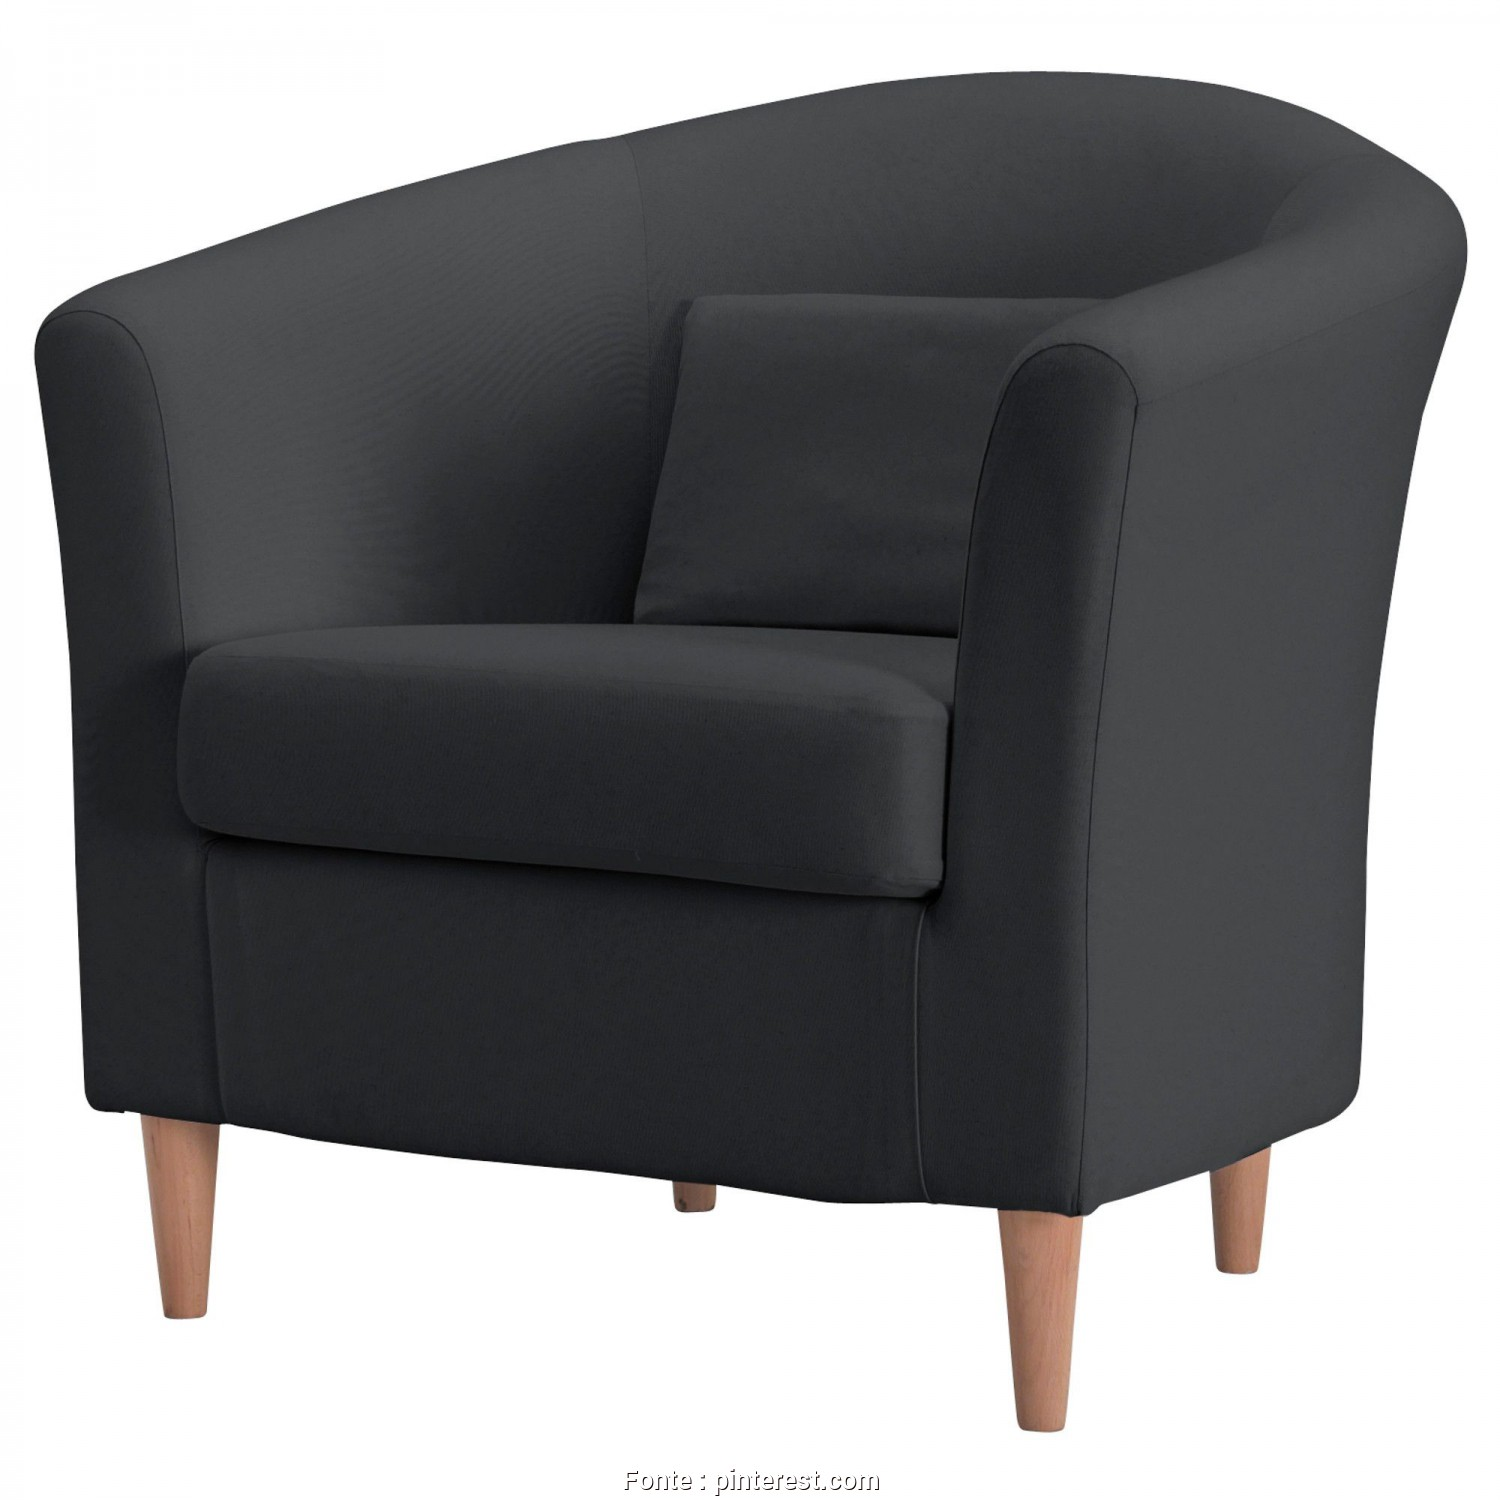 Poltrona Ikea Tullsta, Elegante TULLSTA Chair, Ransta Dark Gray, IKEA $99- Another Option, Probably Easier, Little, To, It,, Naturally, My Ikea Doesn